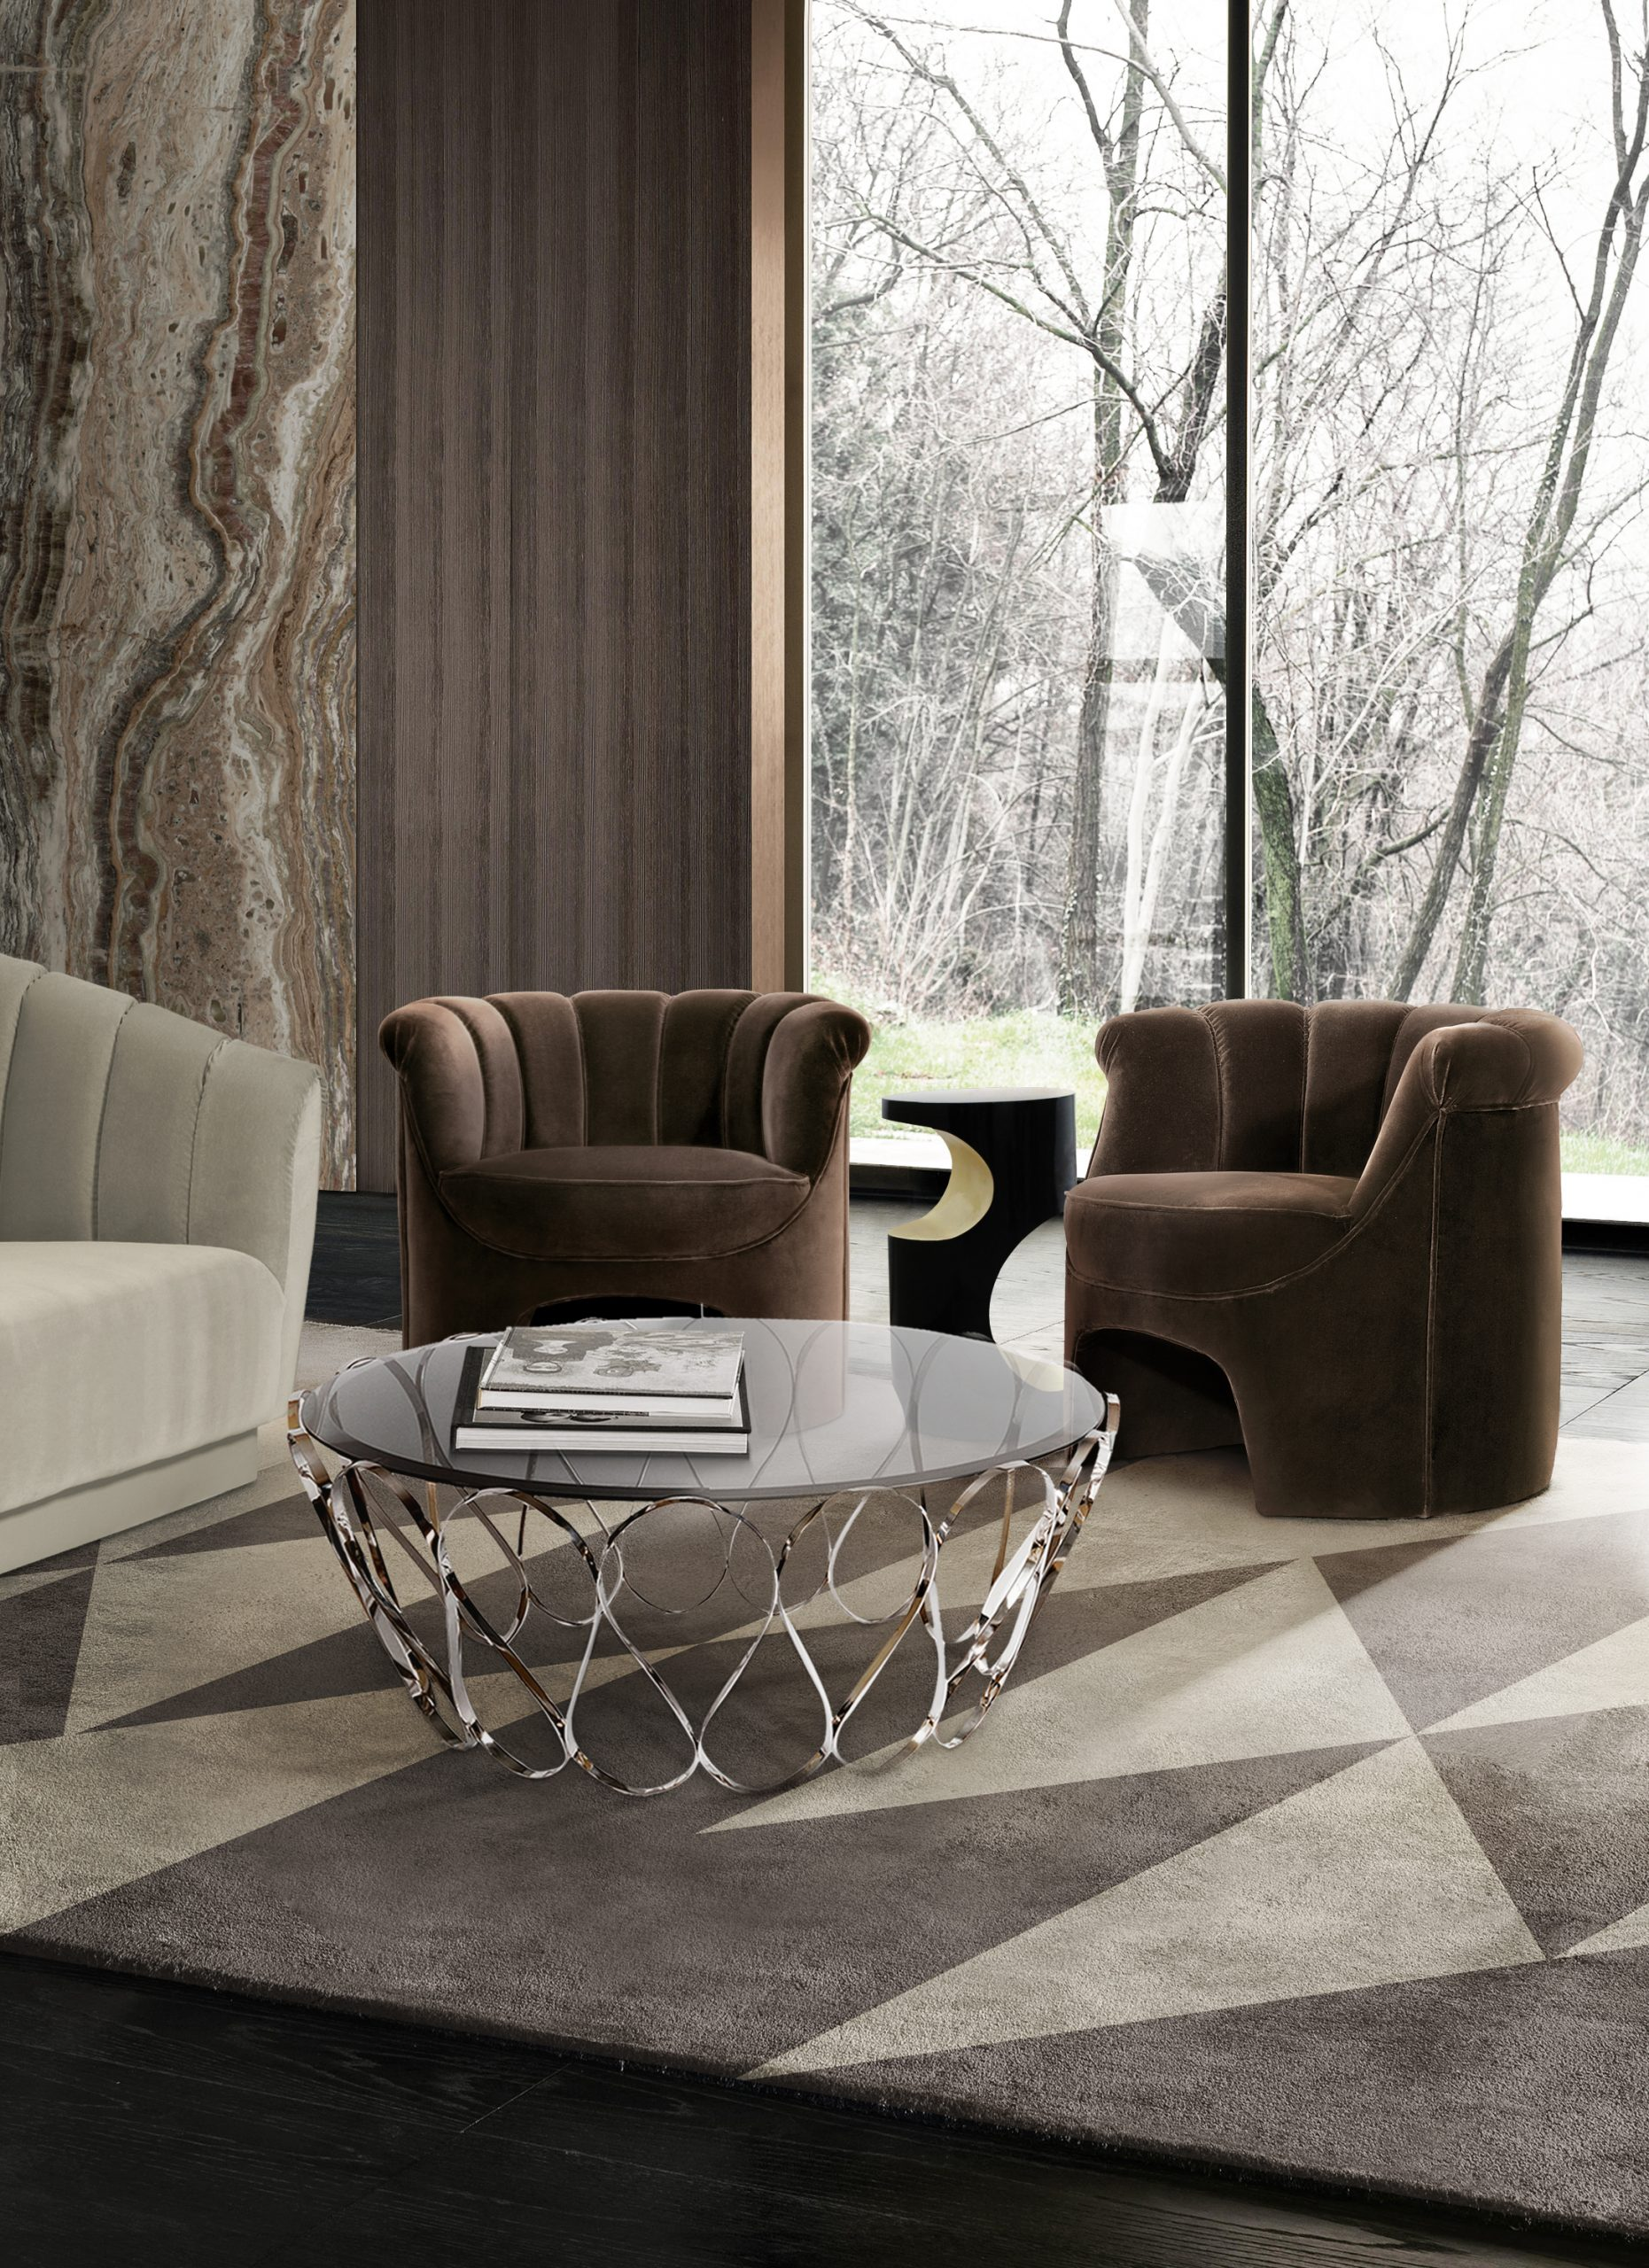 Earth Tones - How To Pick The Best Sofas To Blend Well With This Trend  earth tones Earth Tones – How To Pick The Best Sofas To Blend Well With This Trend 1 hera armchair aquarius origami rug scaled